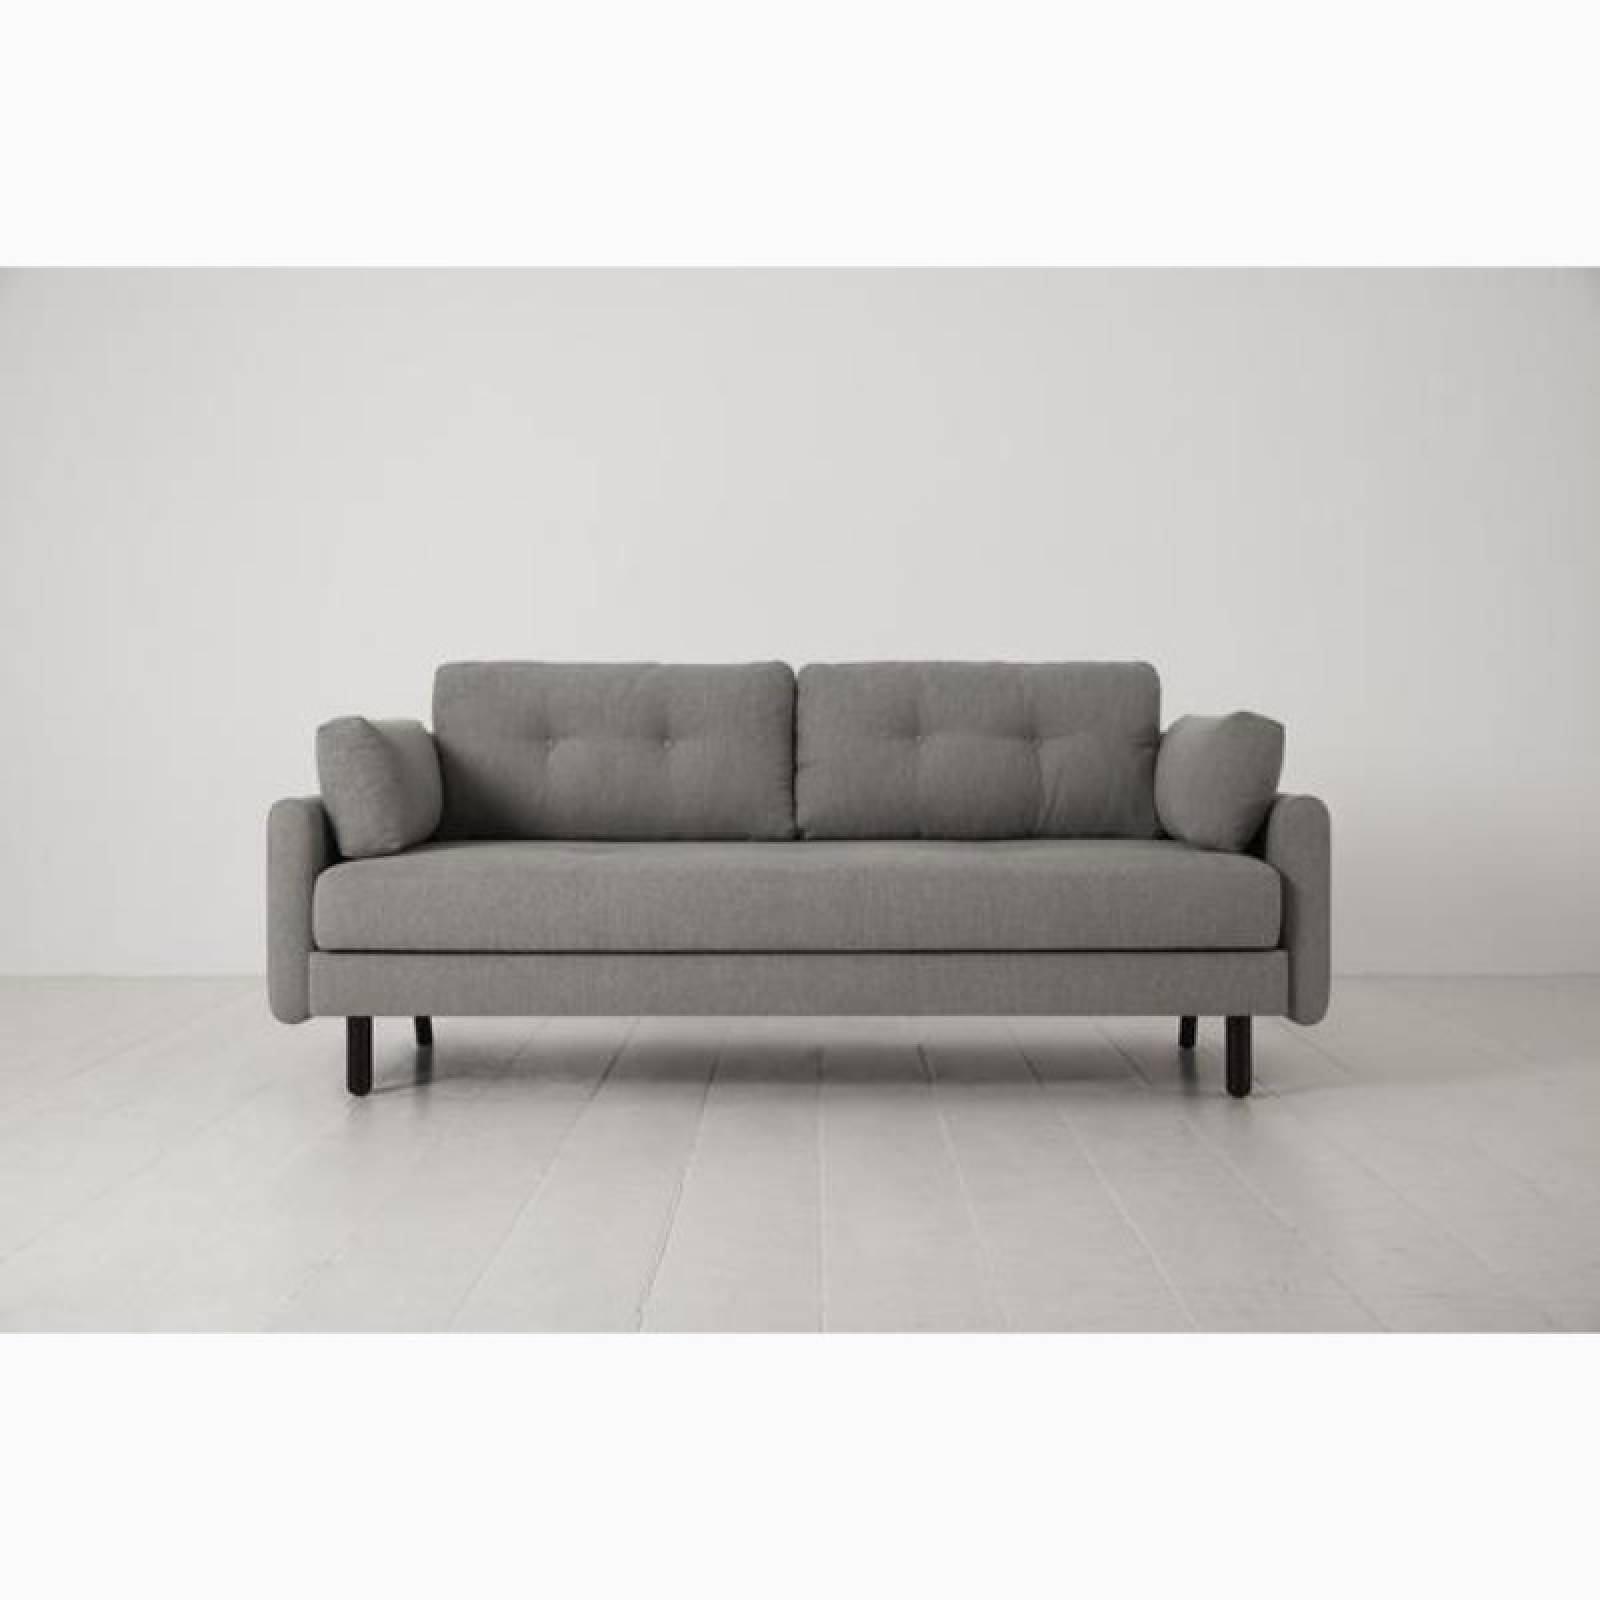 Swyft - Model 04 - 3 Seater Sofa Bed - Linen Shadow